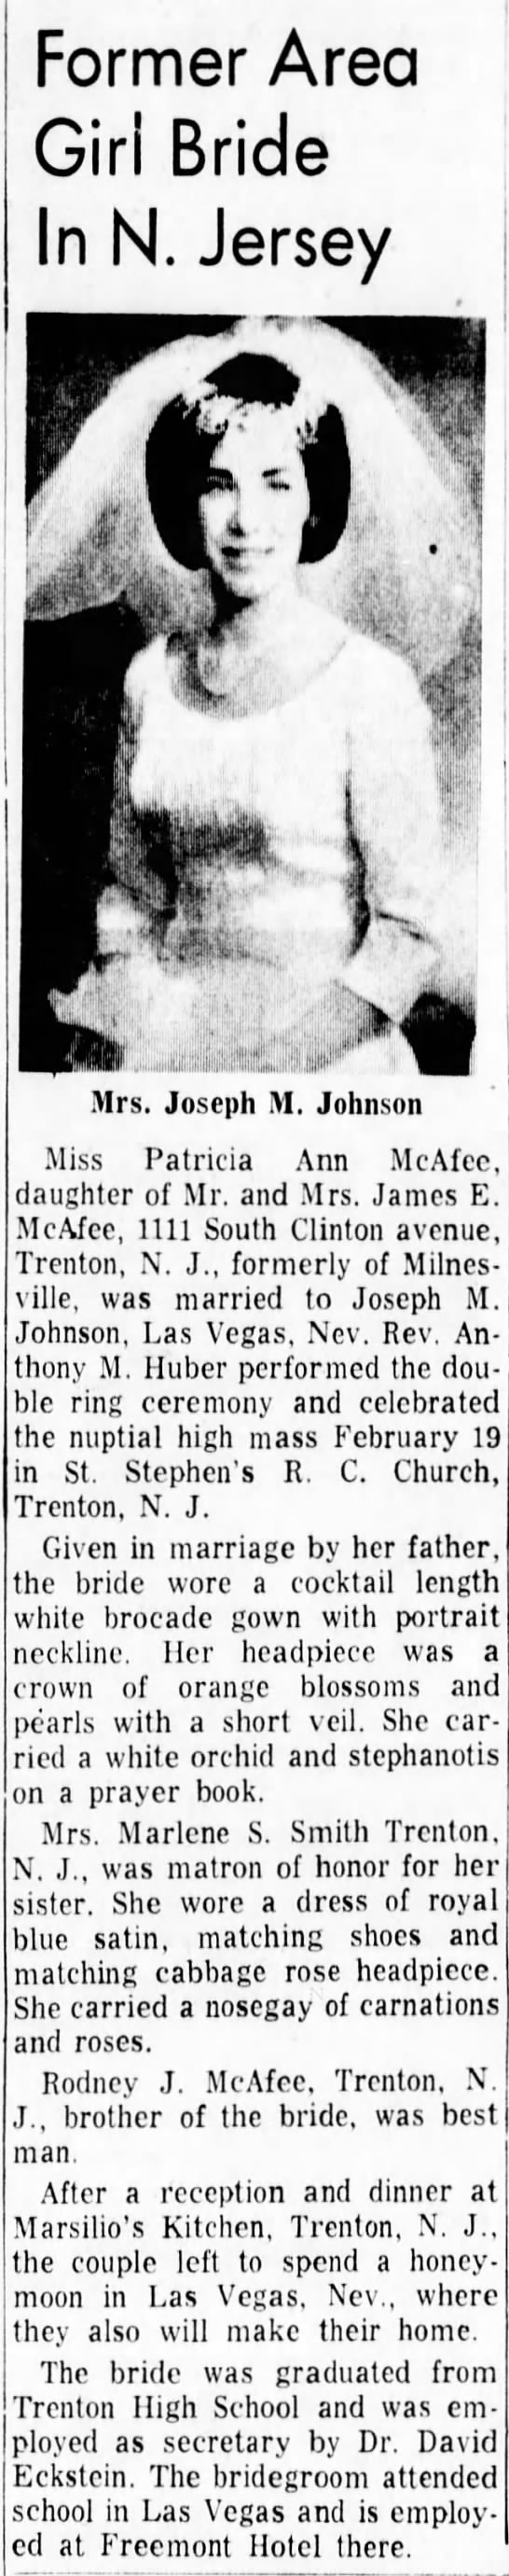 Patricia Ann McAfee wedding to Joseph Johnson - Former Area Girl Bride In N. Jersey ft .A m pi!...